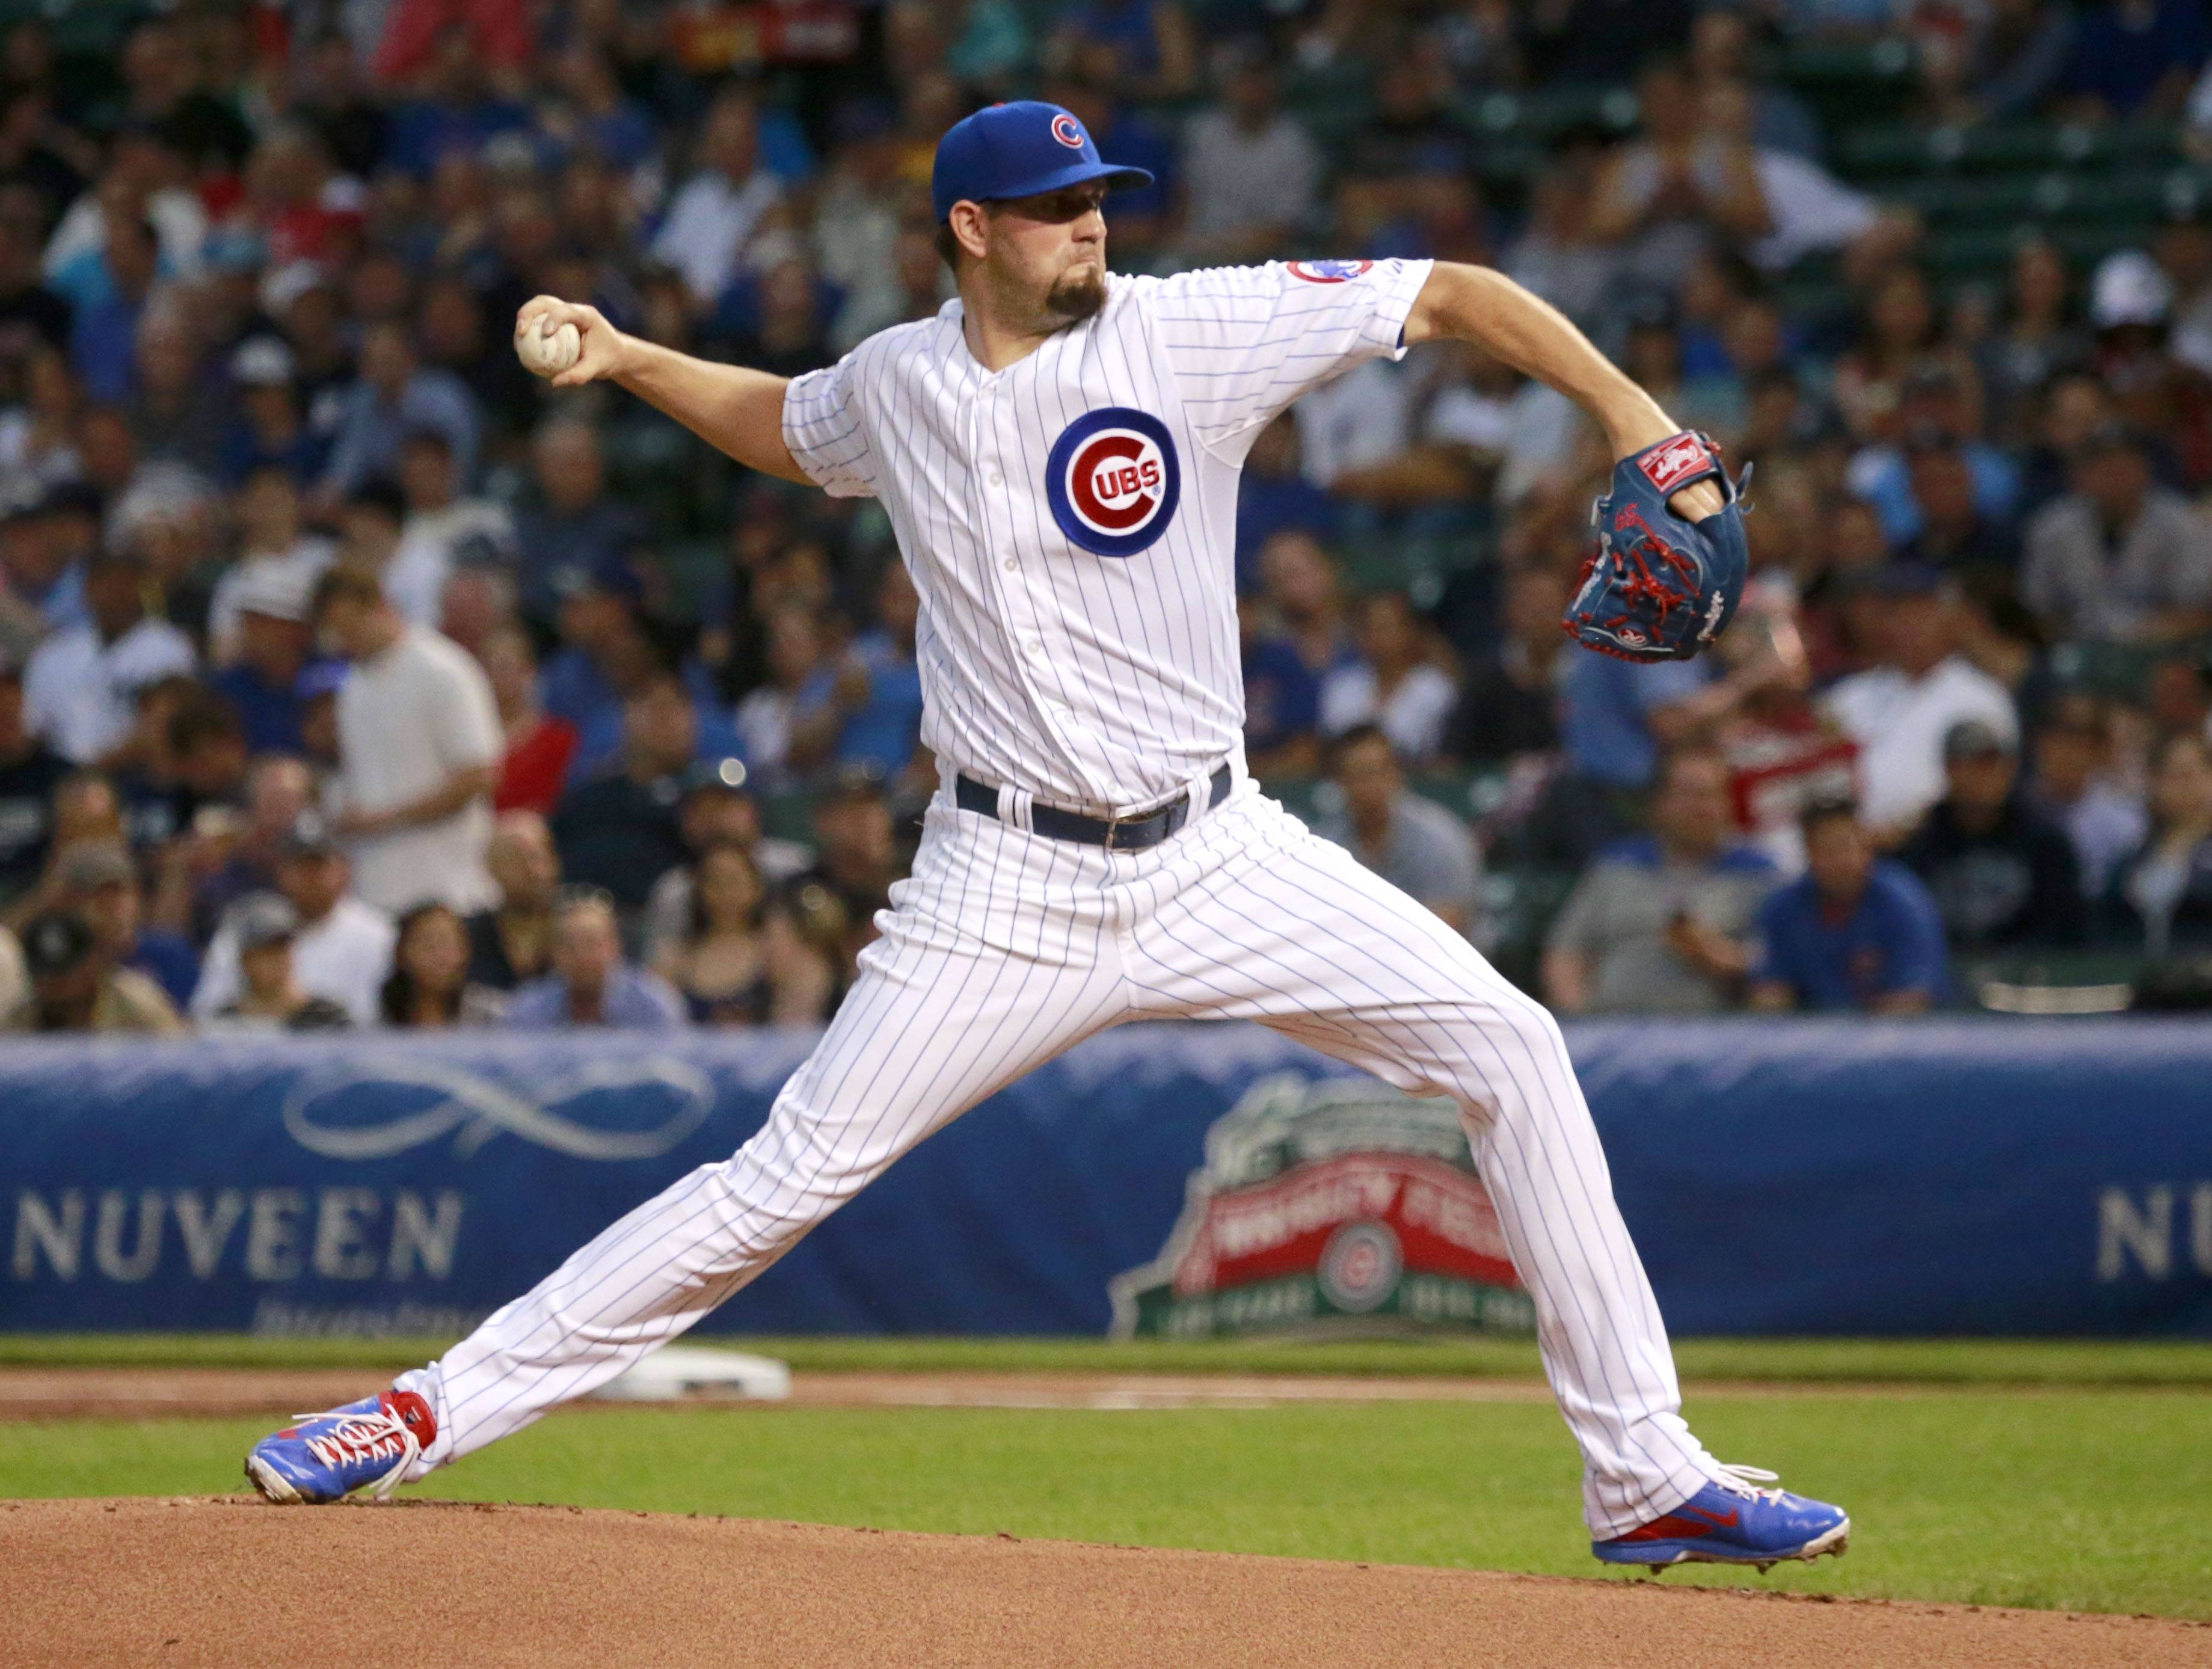 Chicago Cubs starting pitcher Jason Hammel delivers during the first inning of an interleague  baseball game against the New York Yankees on Tuesday, May 20, 2014, in Chicago.